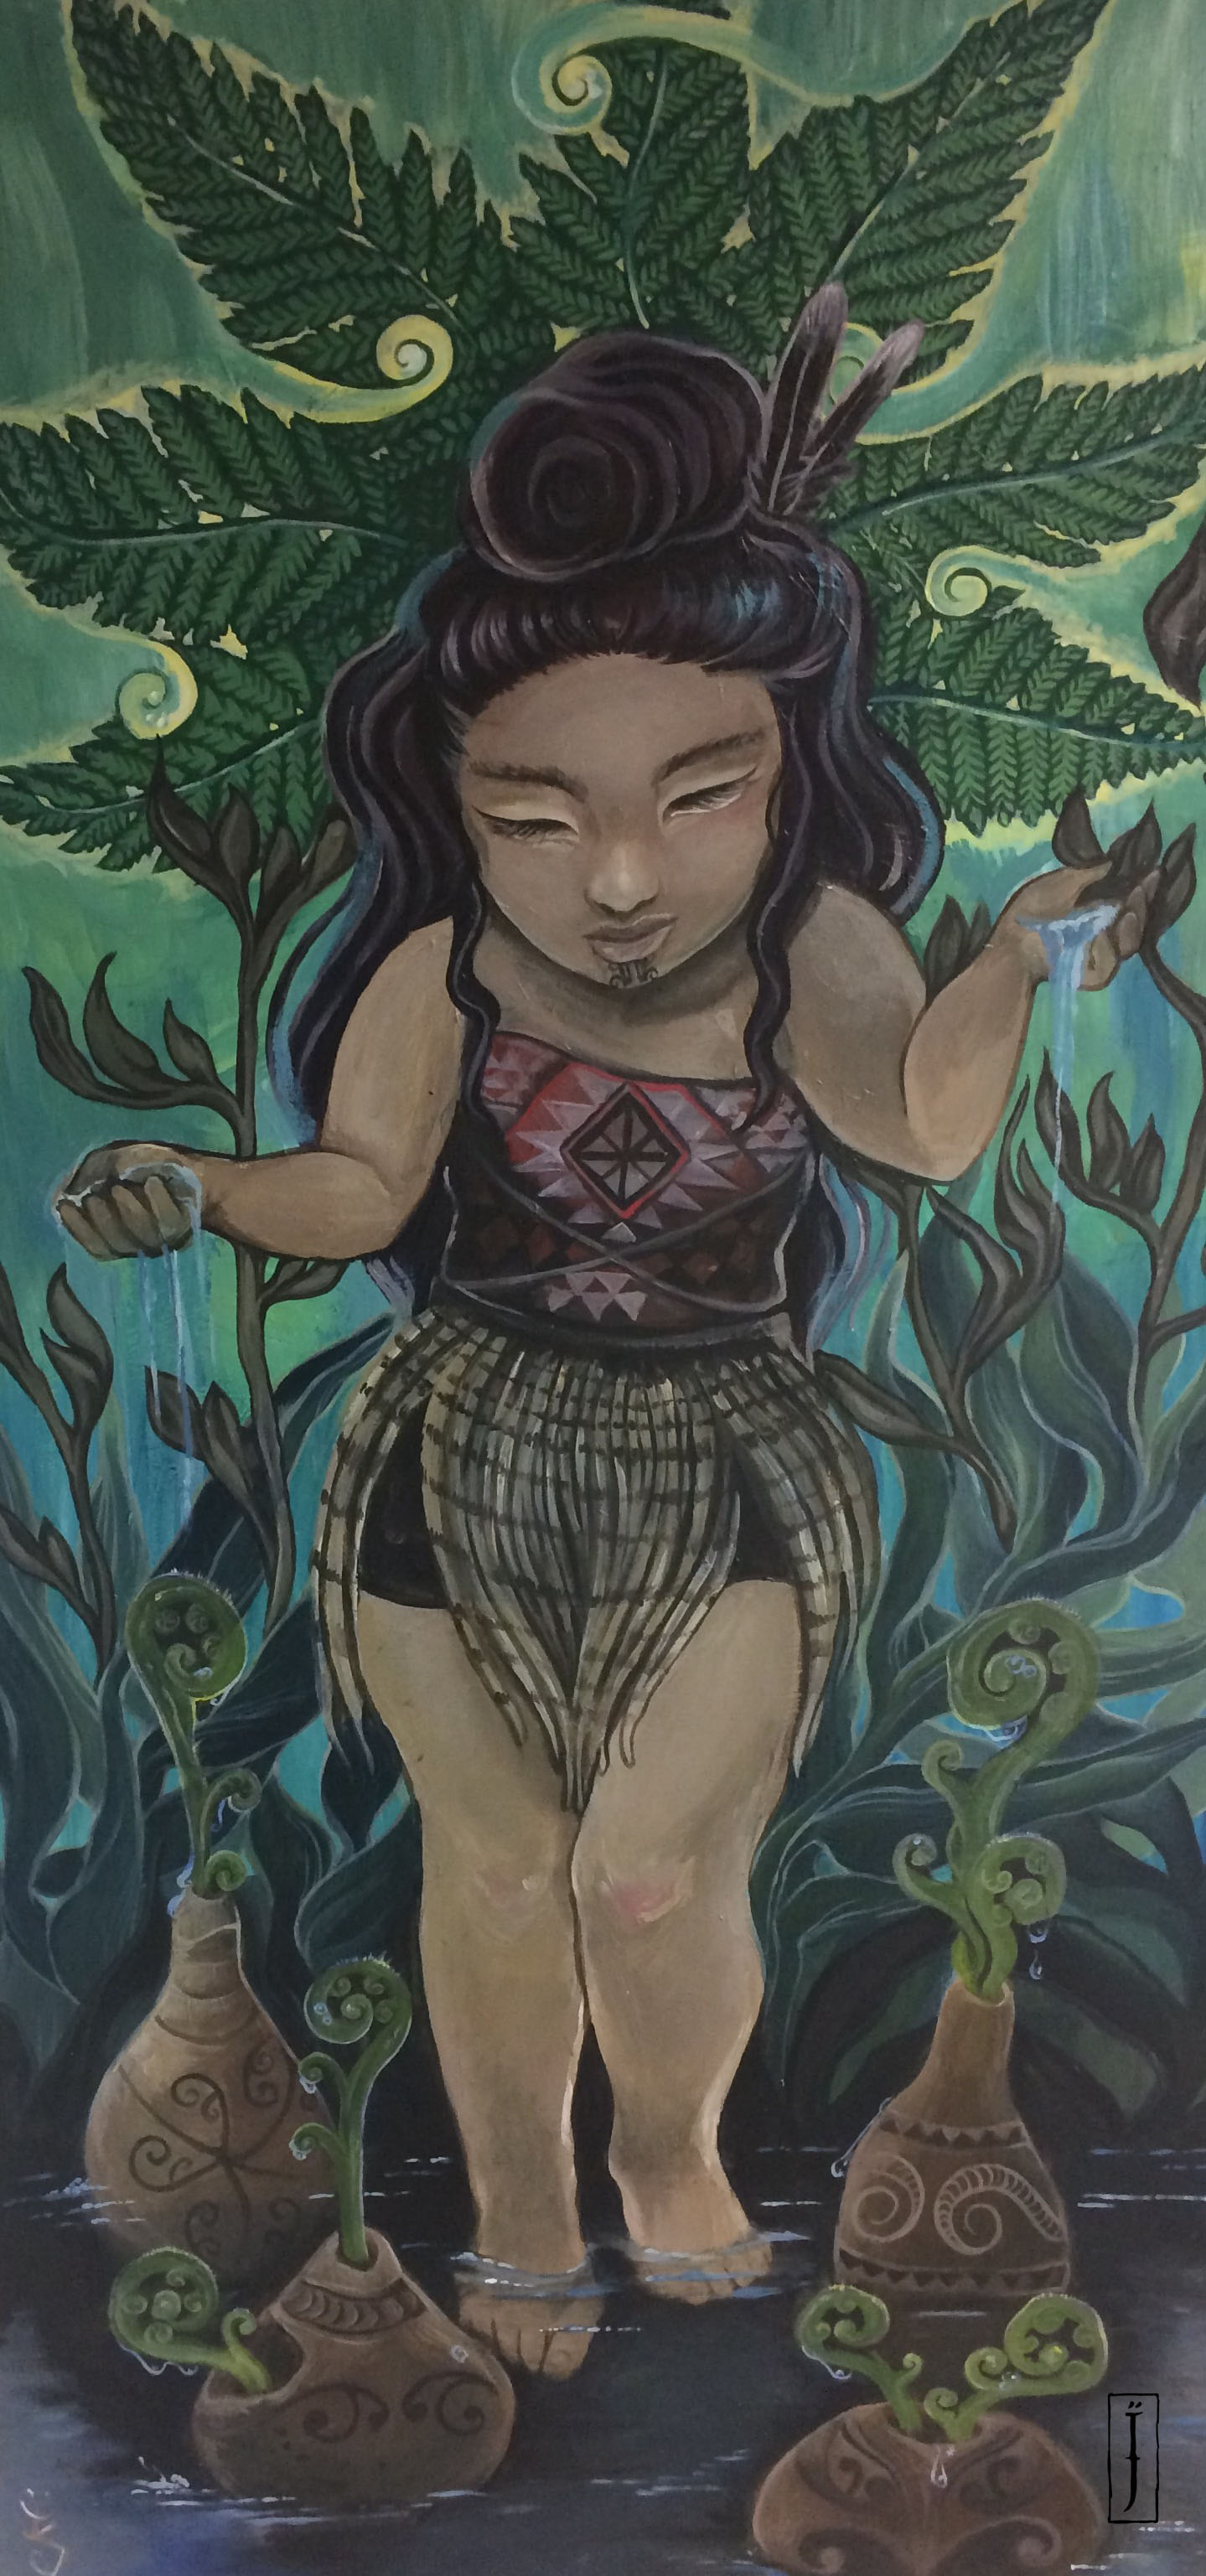 'E tū, Hine-pū-te-hue'  by Isobel Joy Te Aho-White. Click   here   to learn more about this artwork.